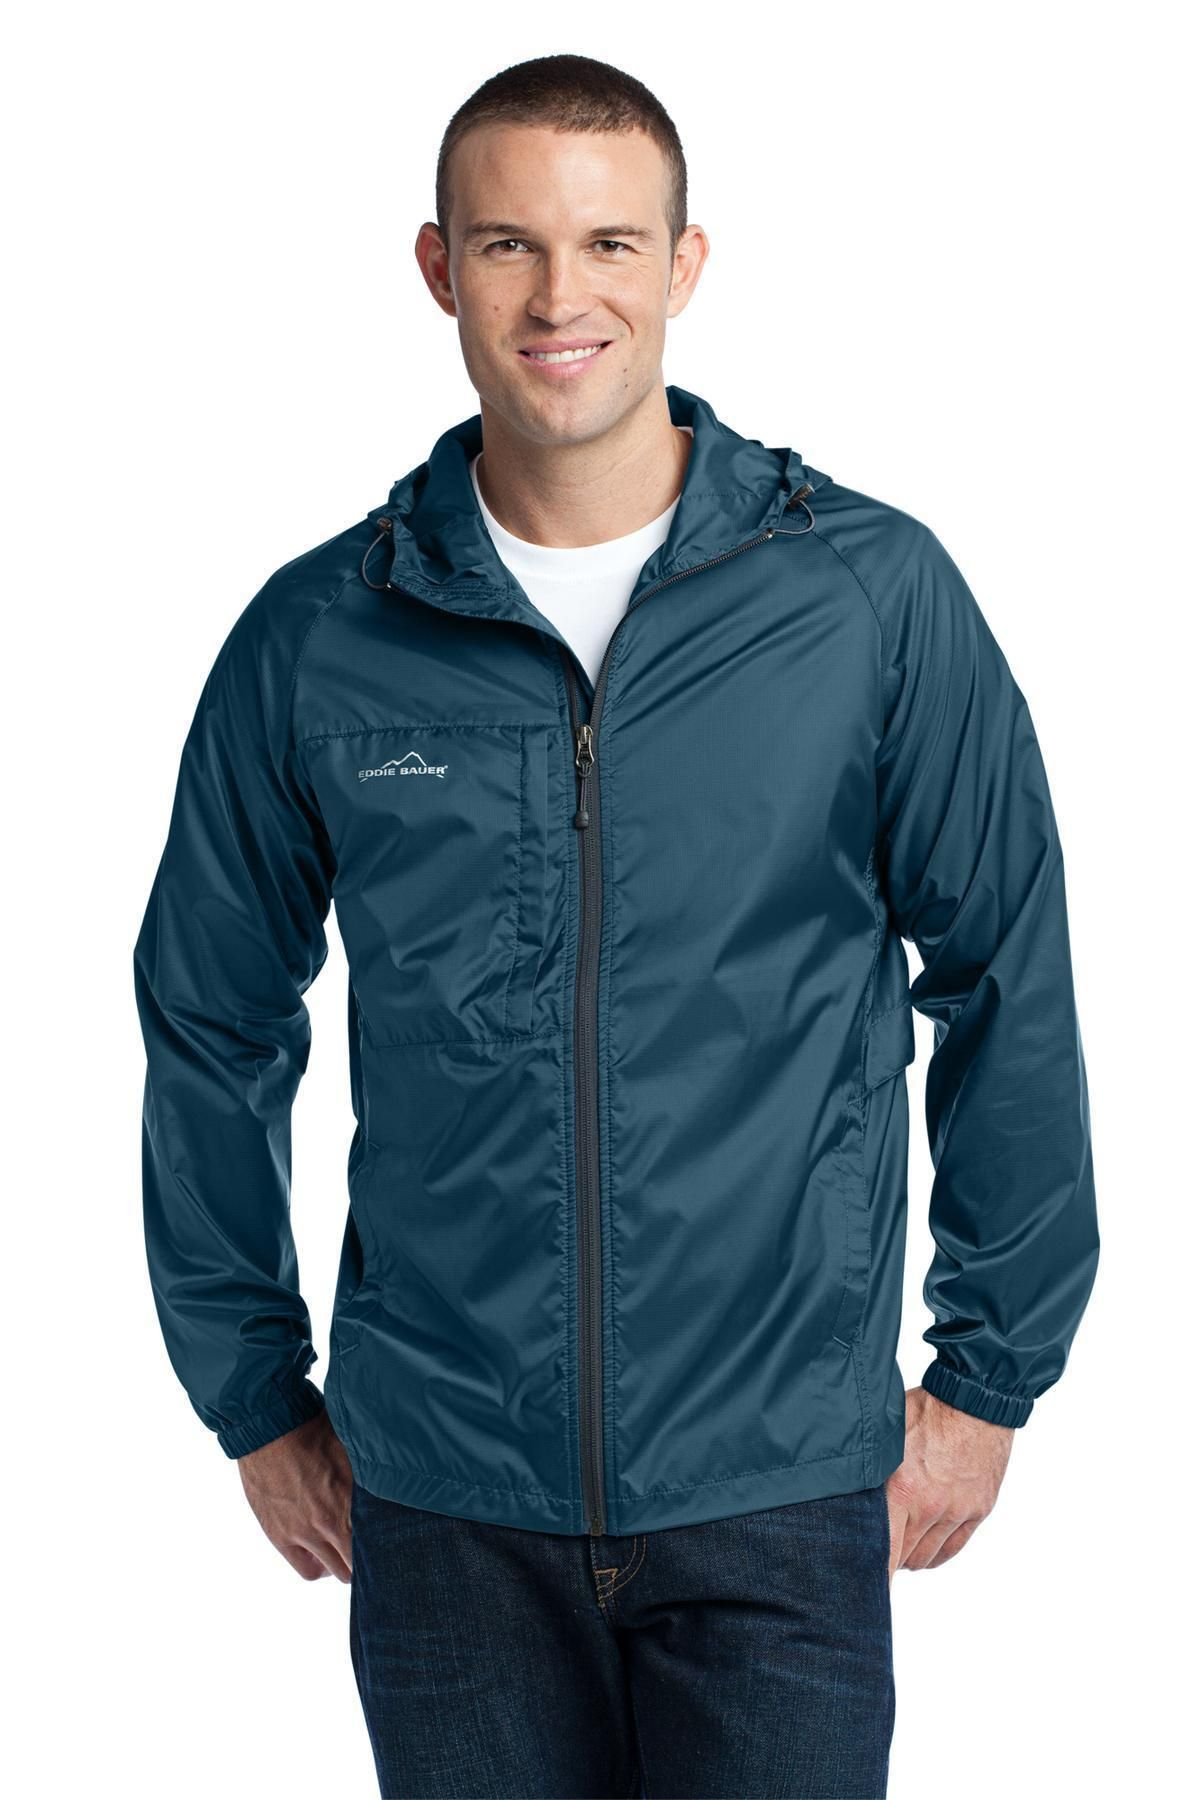 Eddie Bauer Packable Wind Jacket. EB500 Brilliant Blue